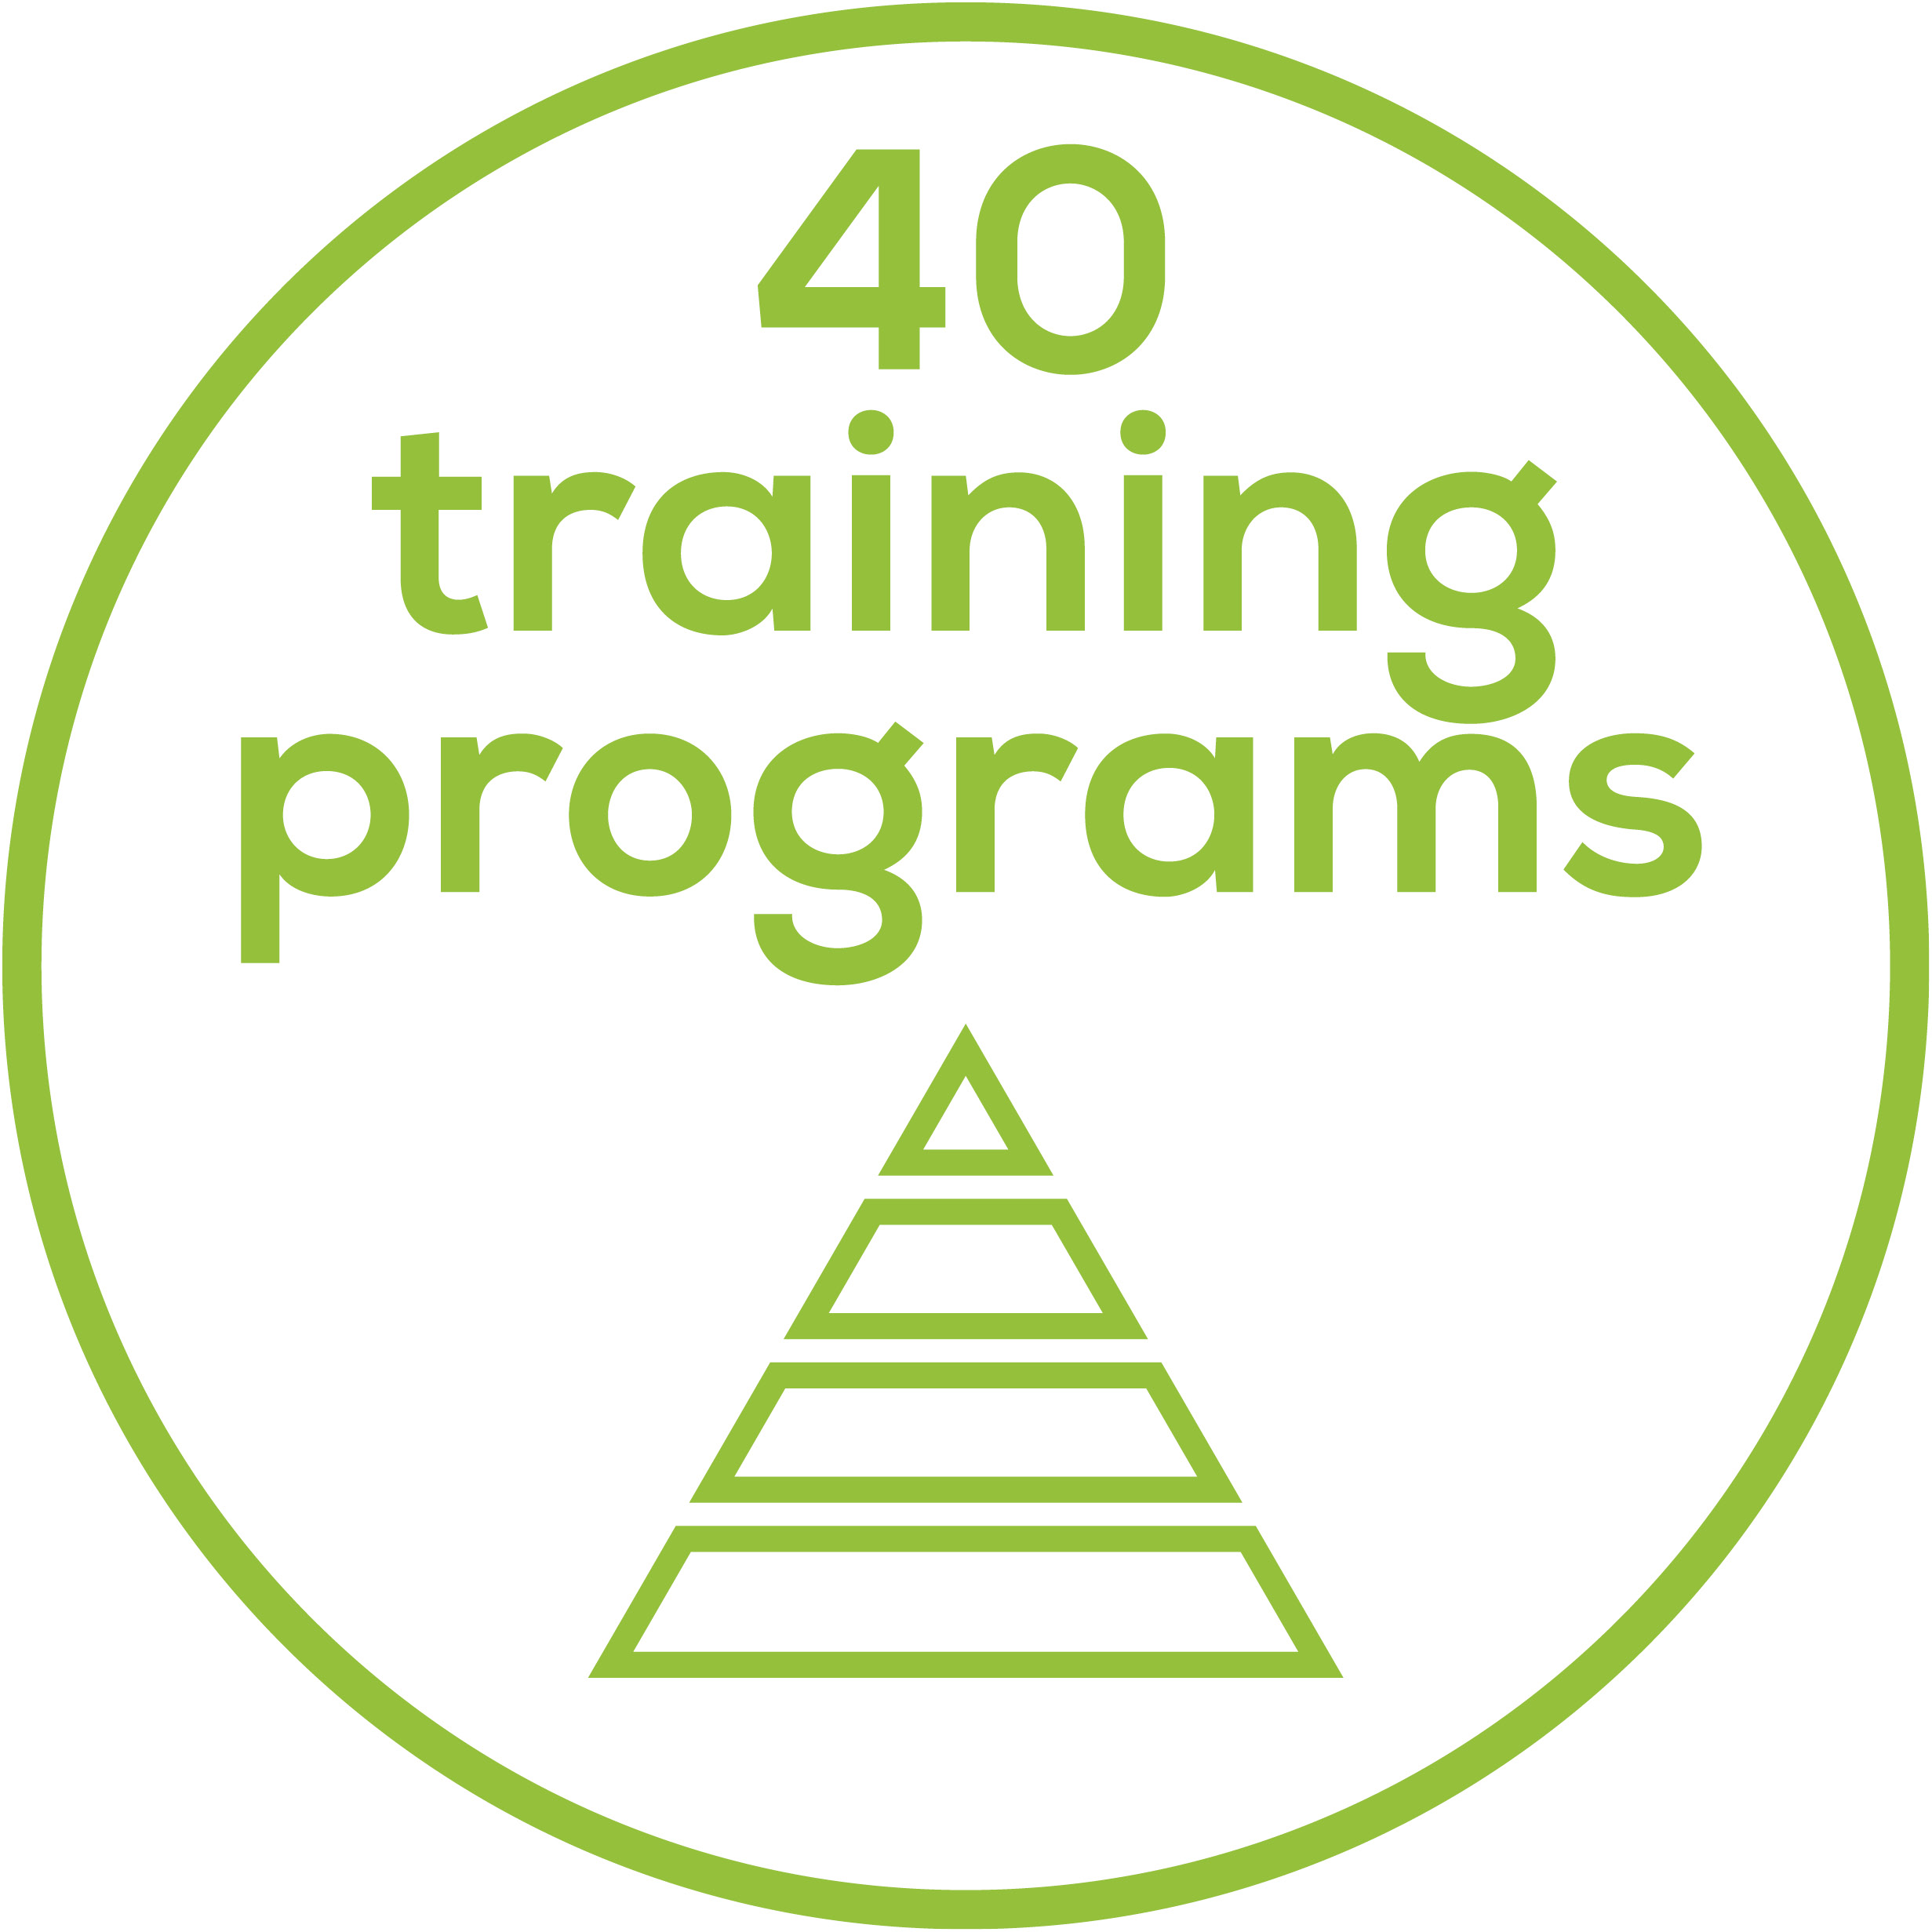 Training programs 40 pre-programmed applications